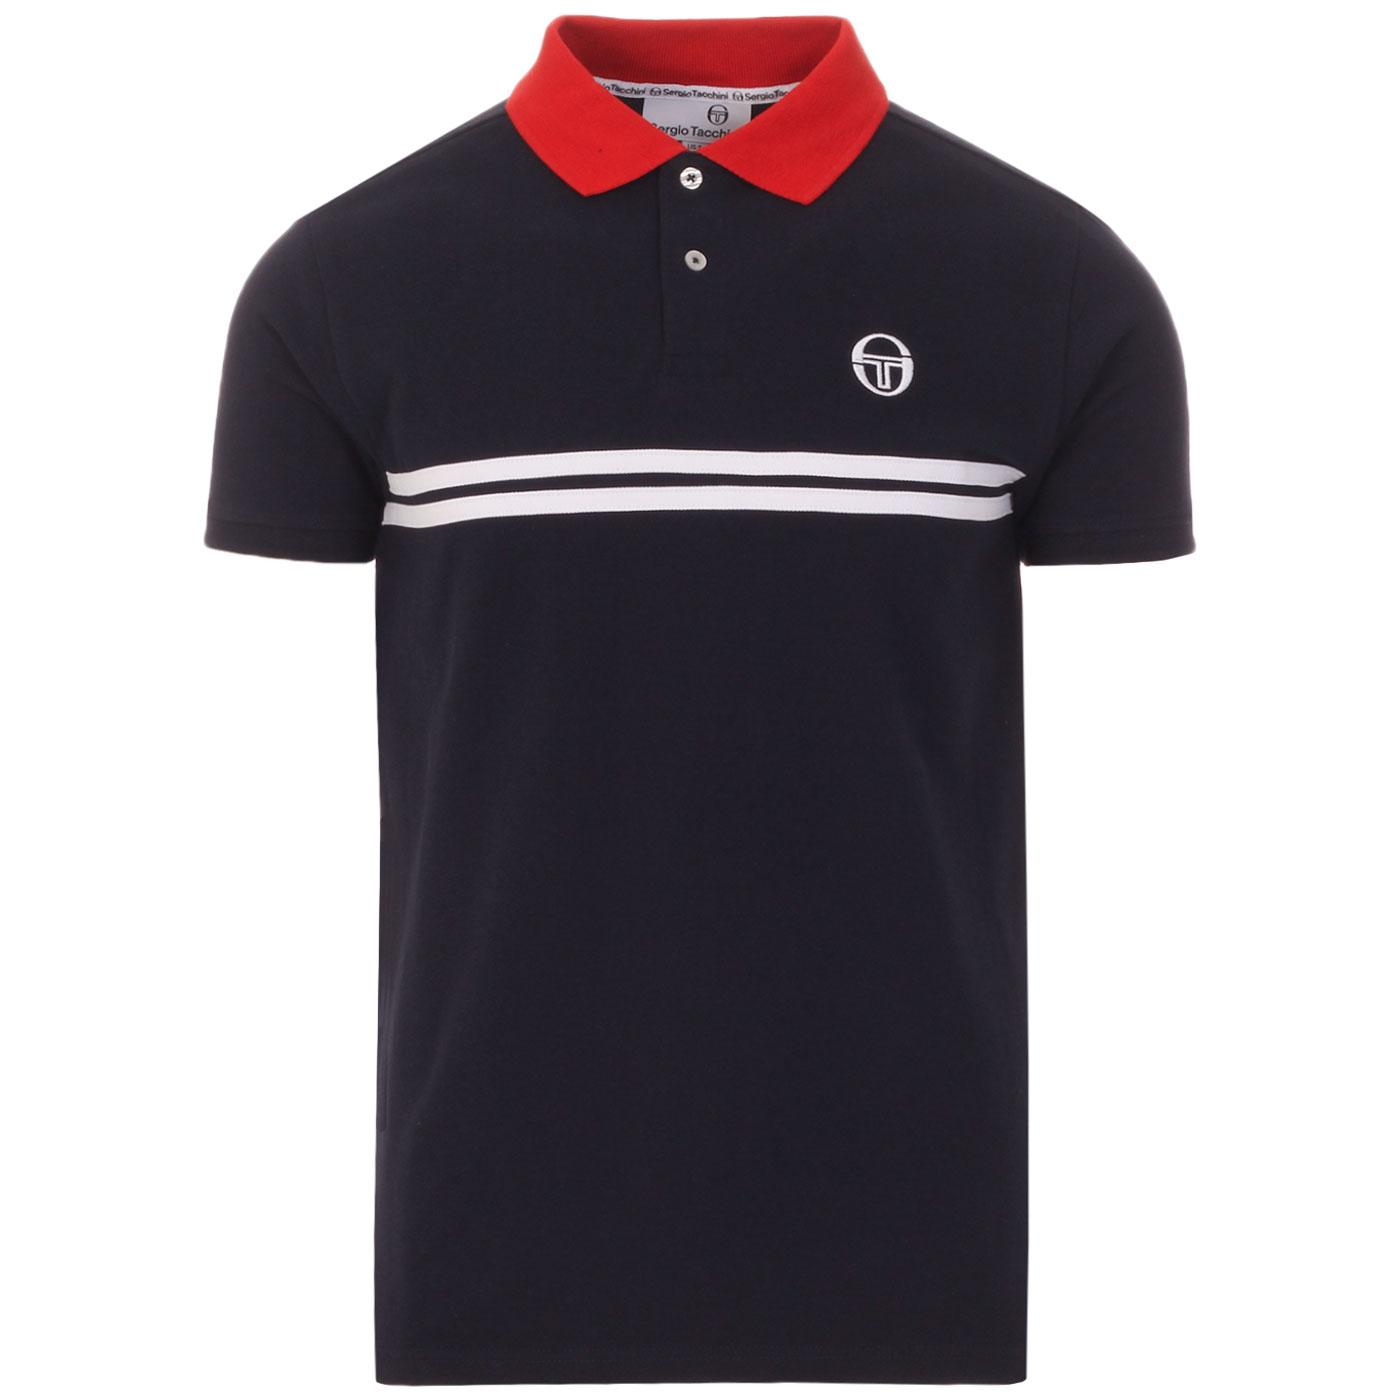 Supermac SERGIO TACCHINI Retro 80s Polo Top (NS)